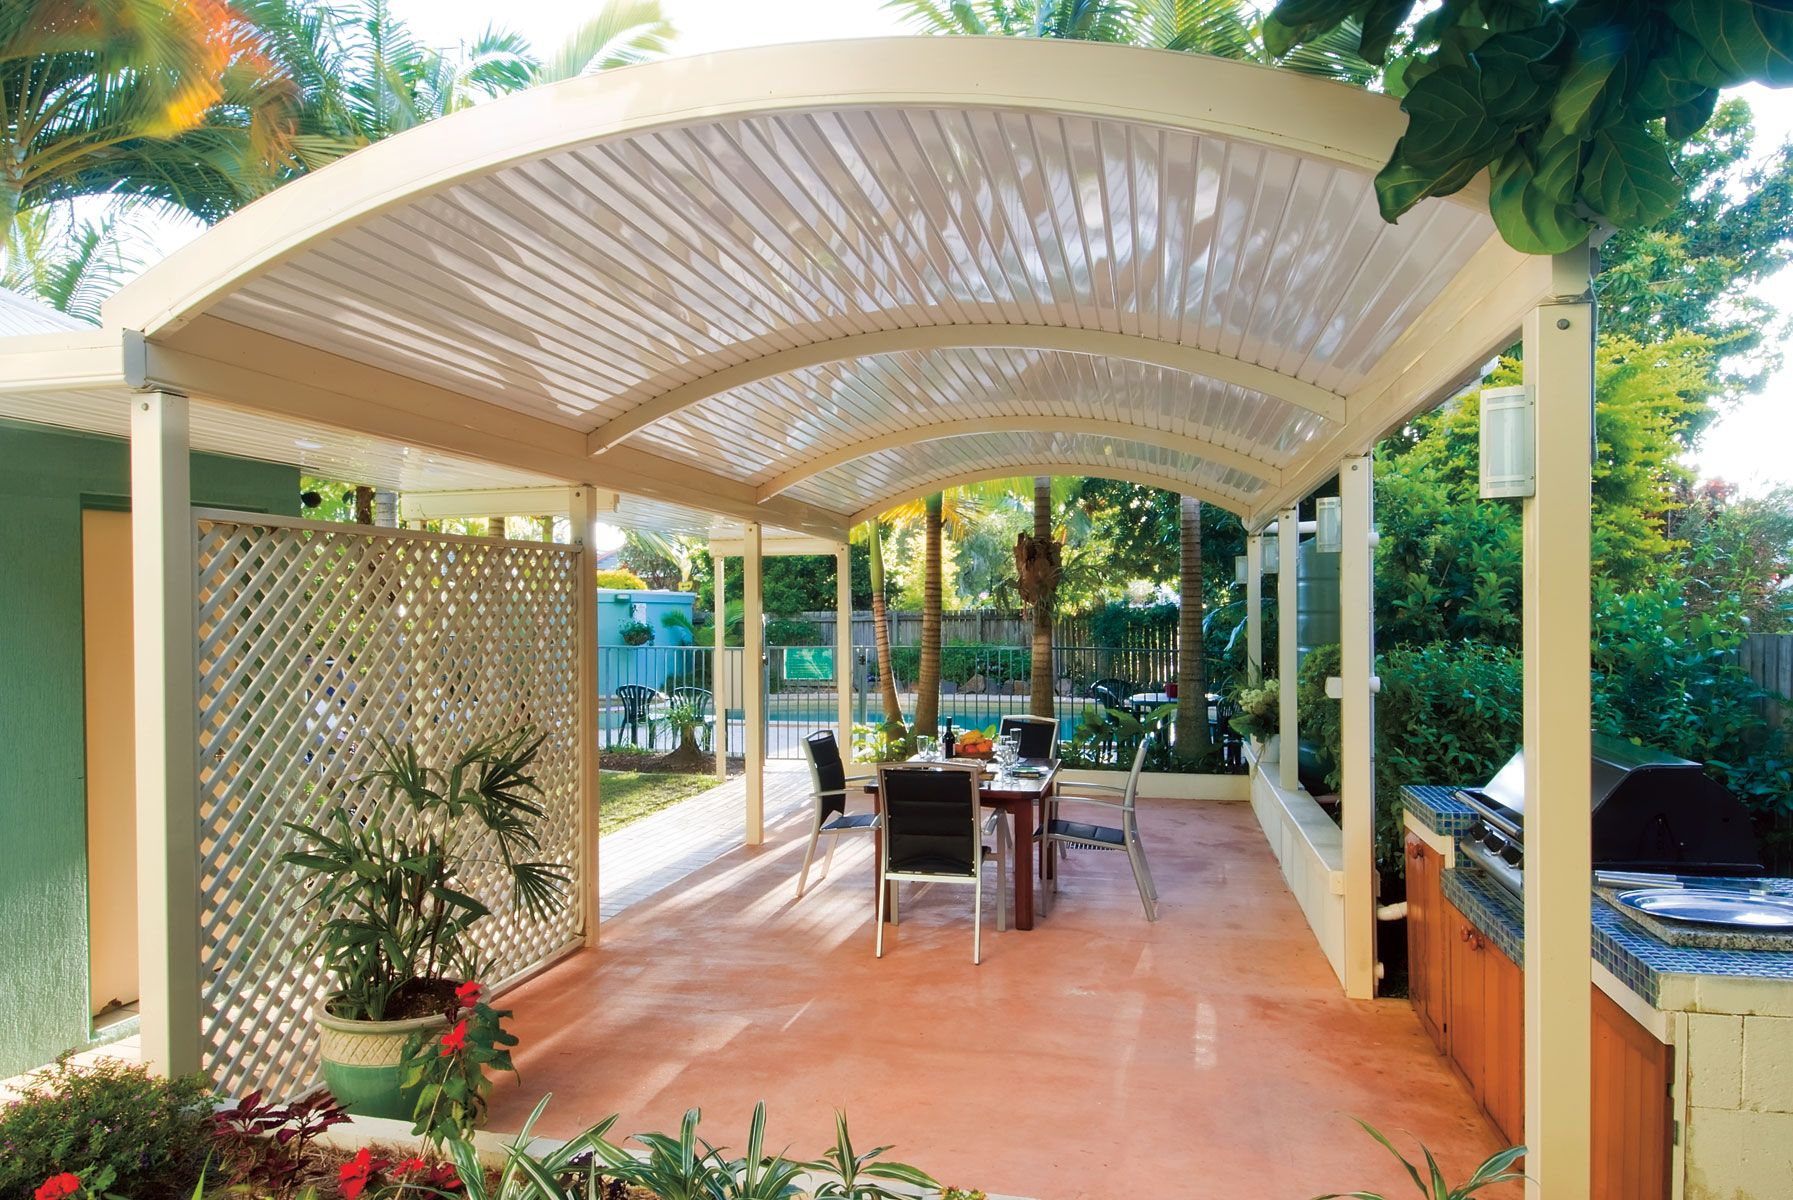 Curved Roof Patio Stratco Curved Patio Roof Patio Curved Patio Patio Design